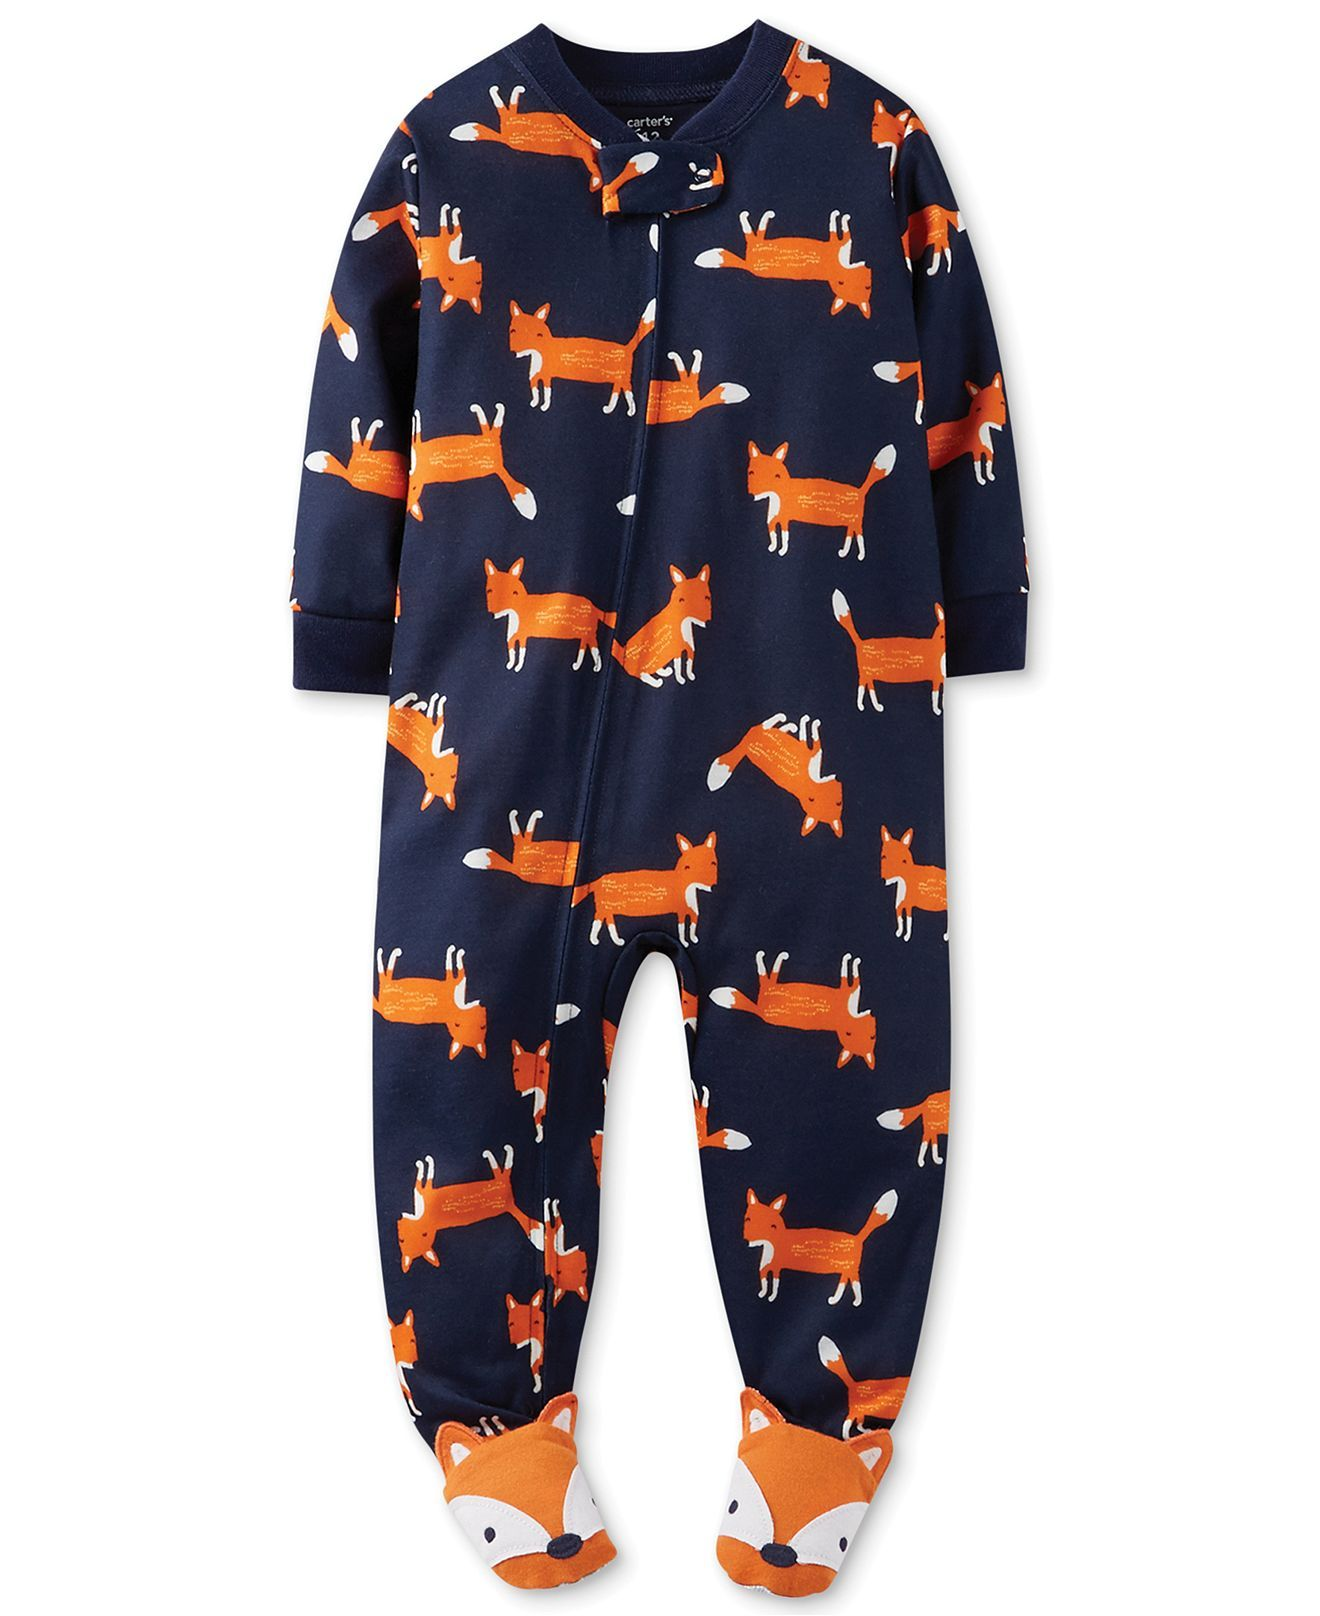 Zip Up Footie Pajamas Baby Breeze Clothing